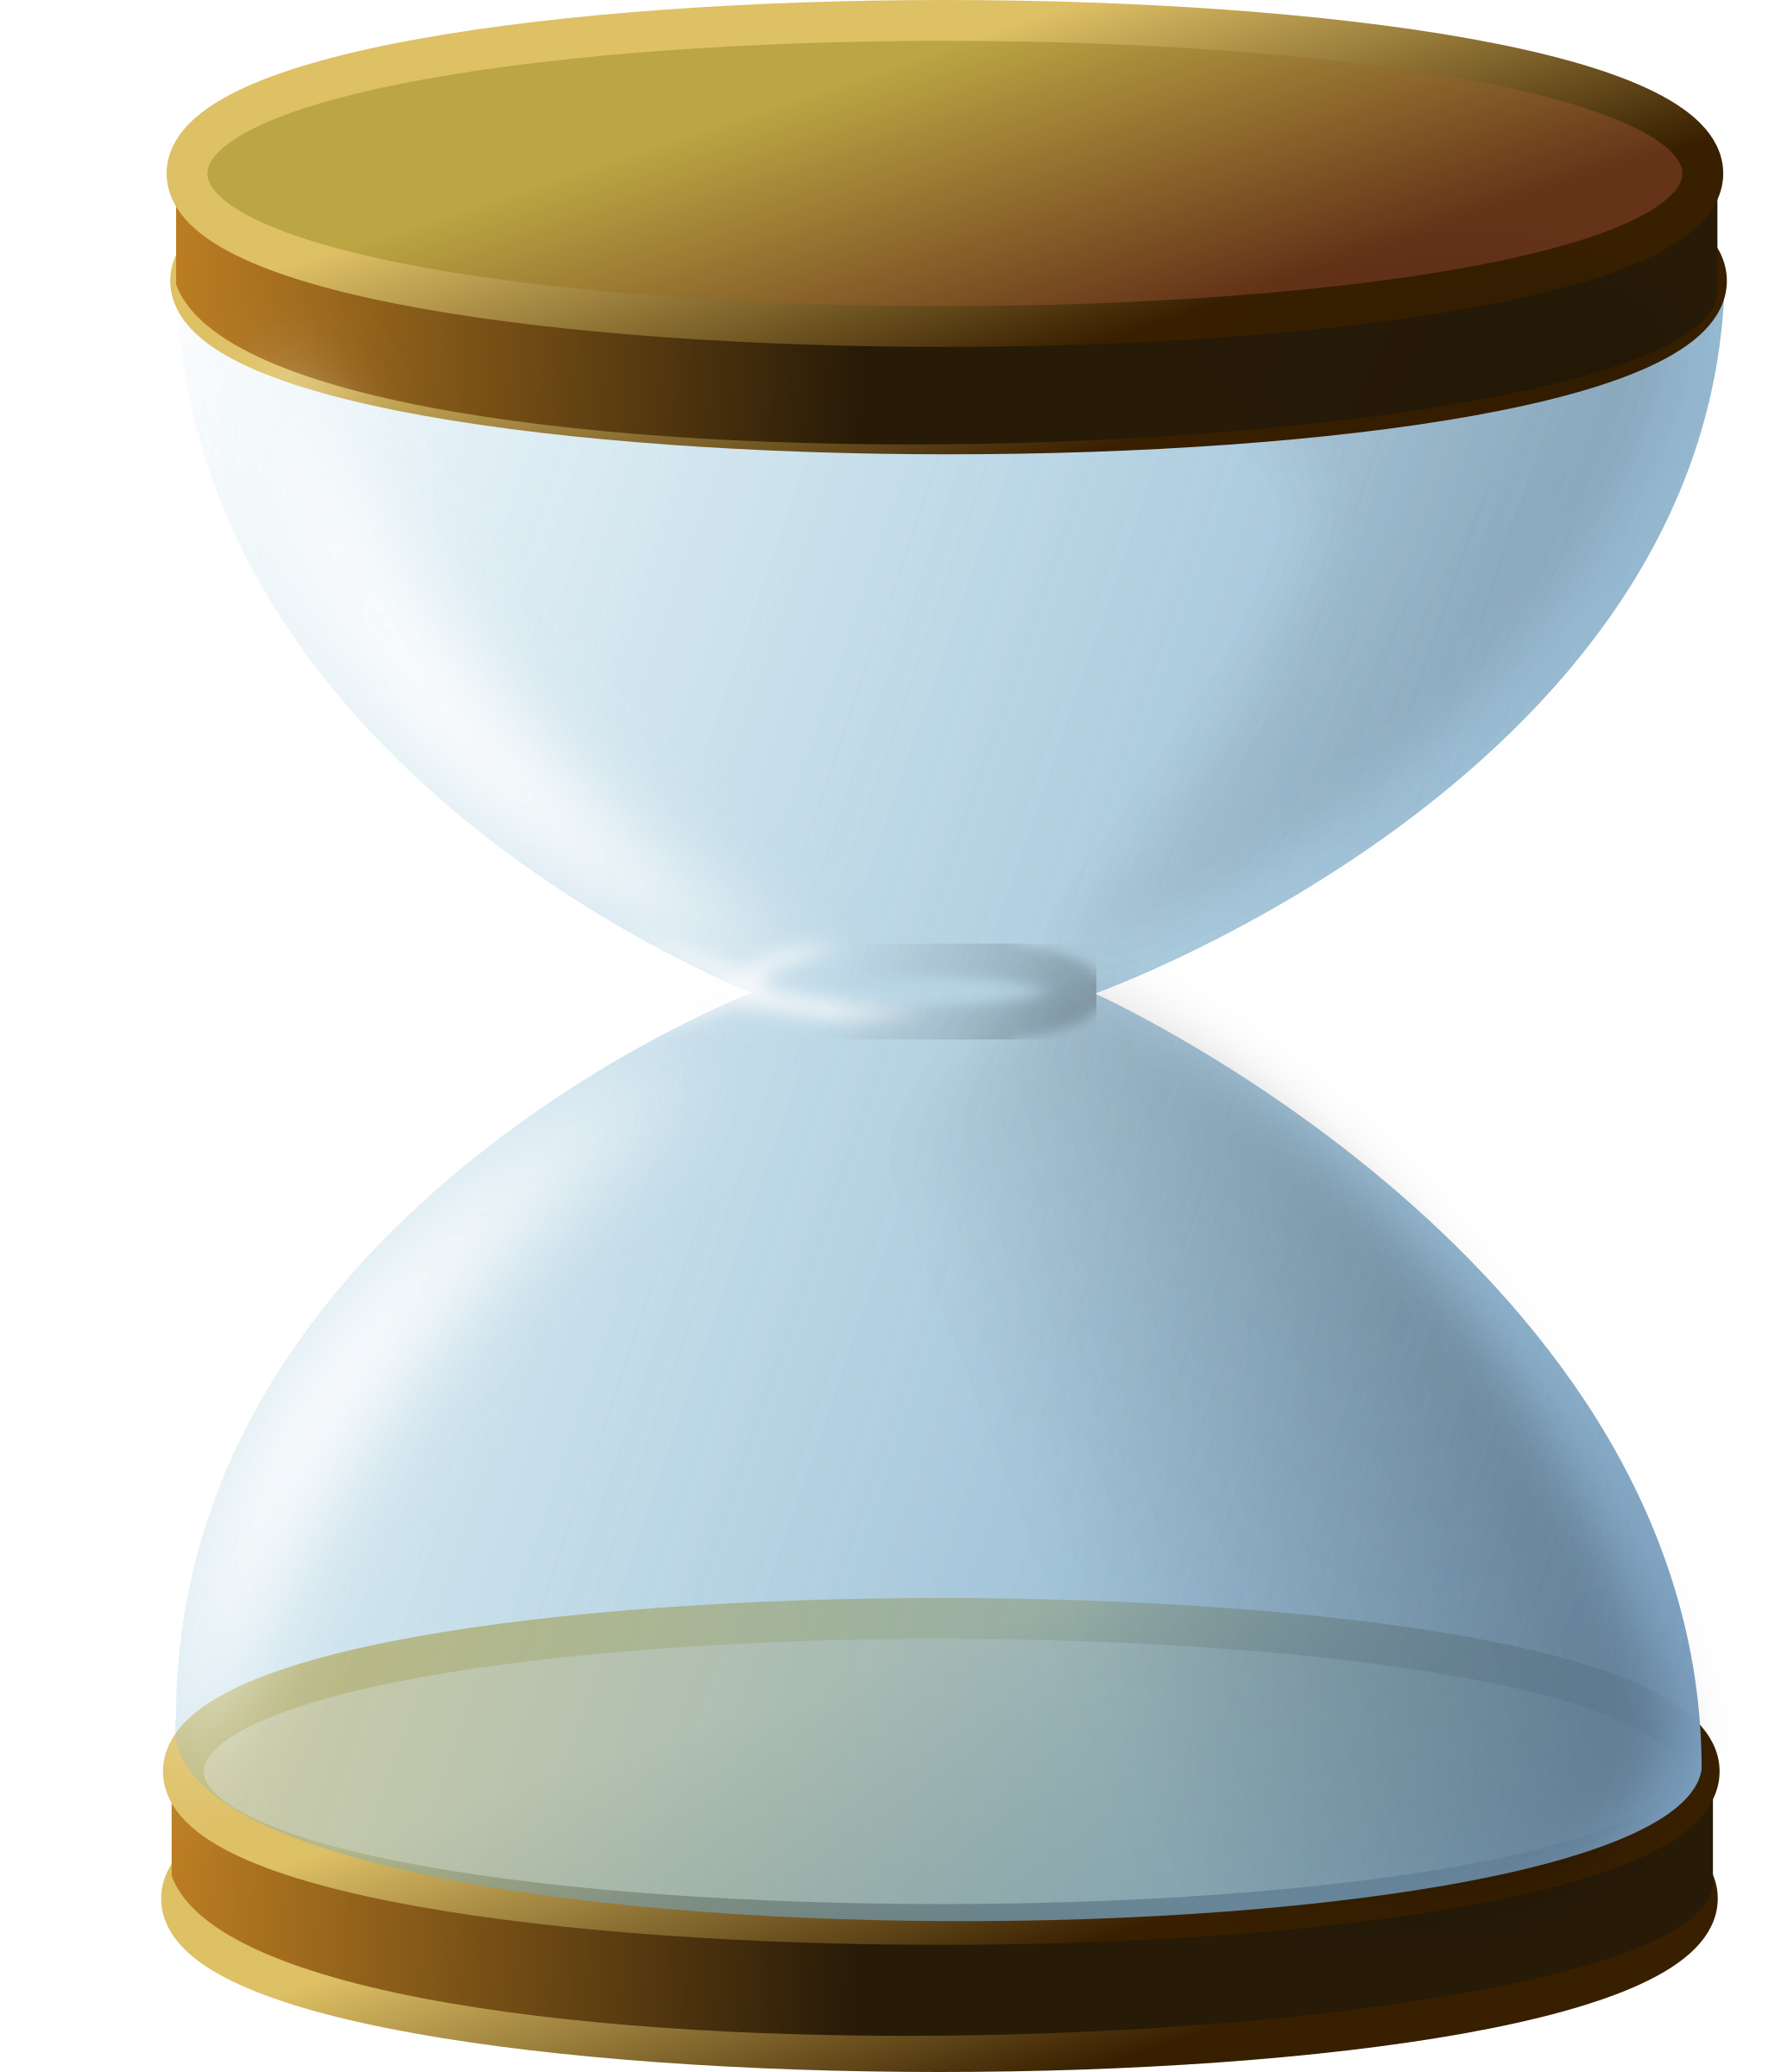 Hourglass clipart blue. Sand less big image